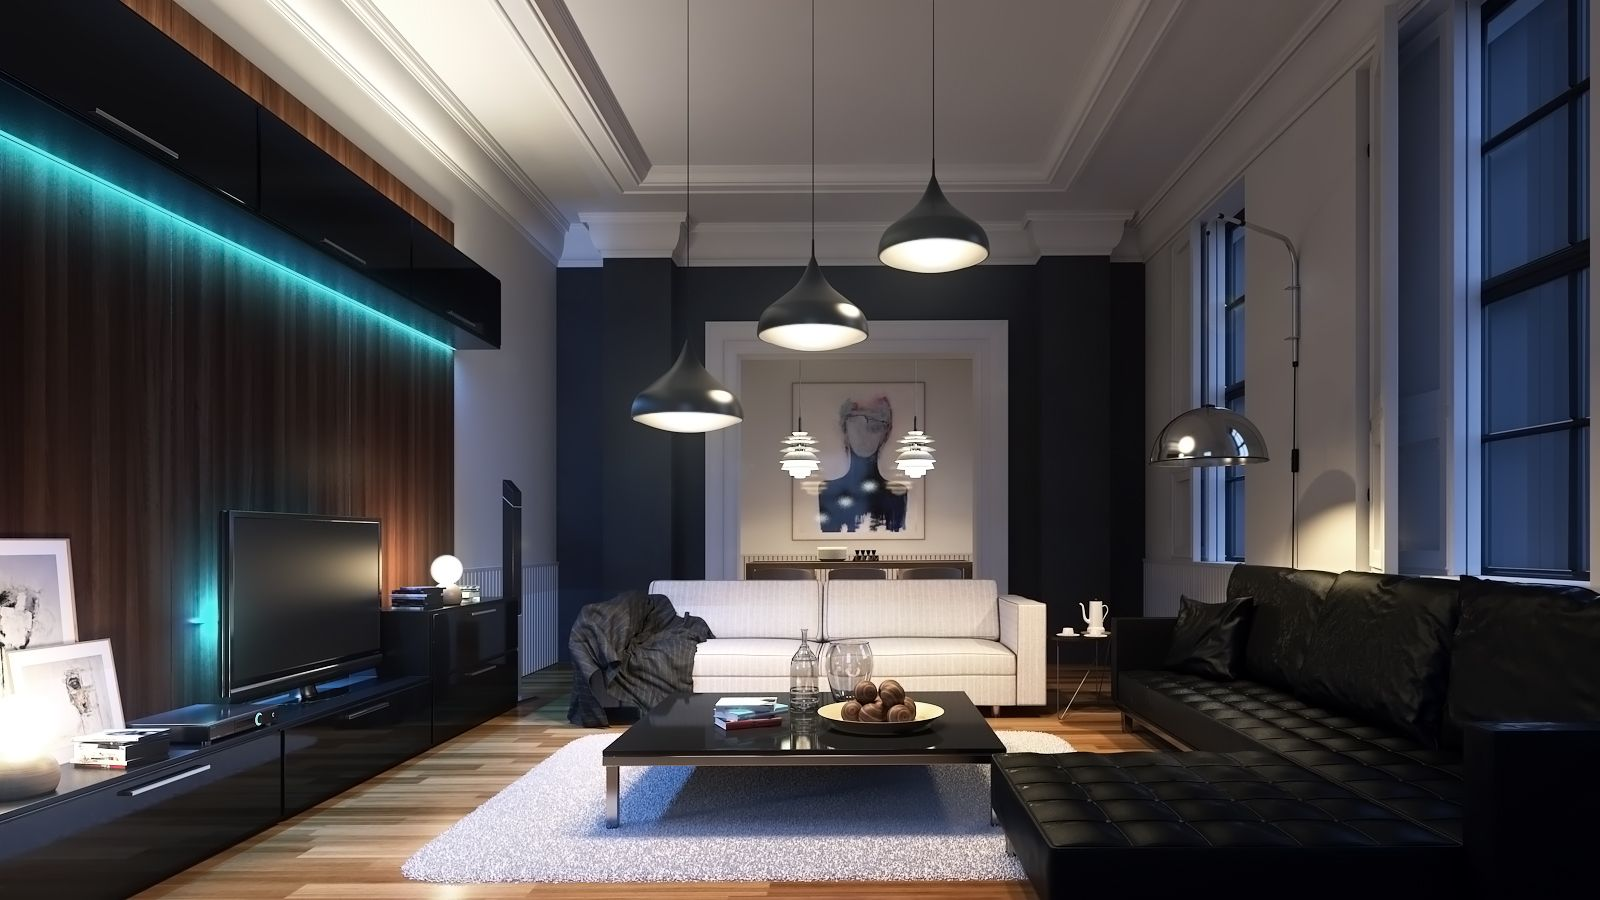 Explore Interior Rendering 3d Architecture And More